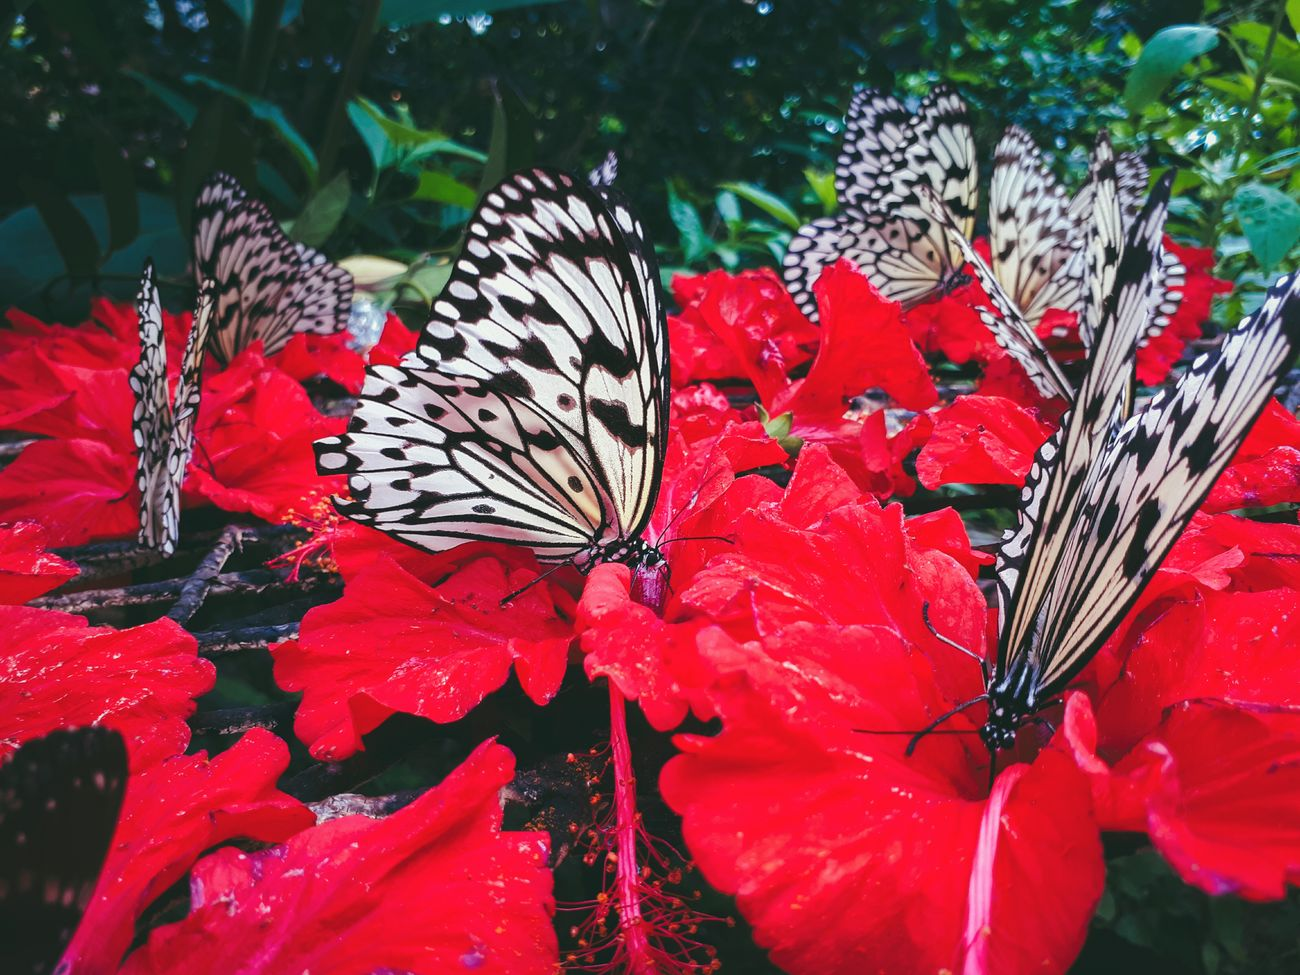 Butterfly Feasting on Nectar. Flower Nature Plant Close-up Butterfly - Insect Butterfly Red Insect First Eyeem Photo